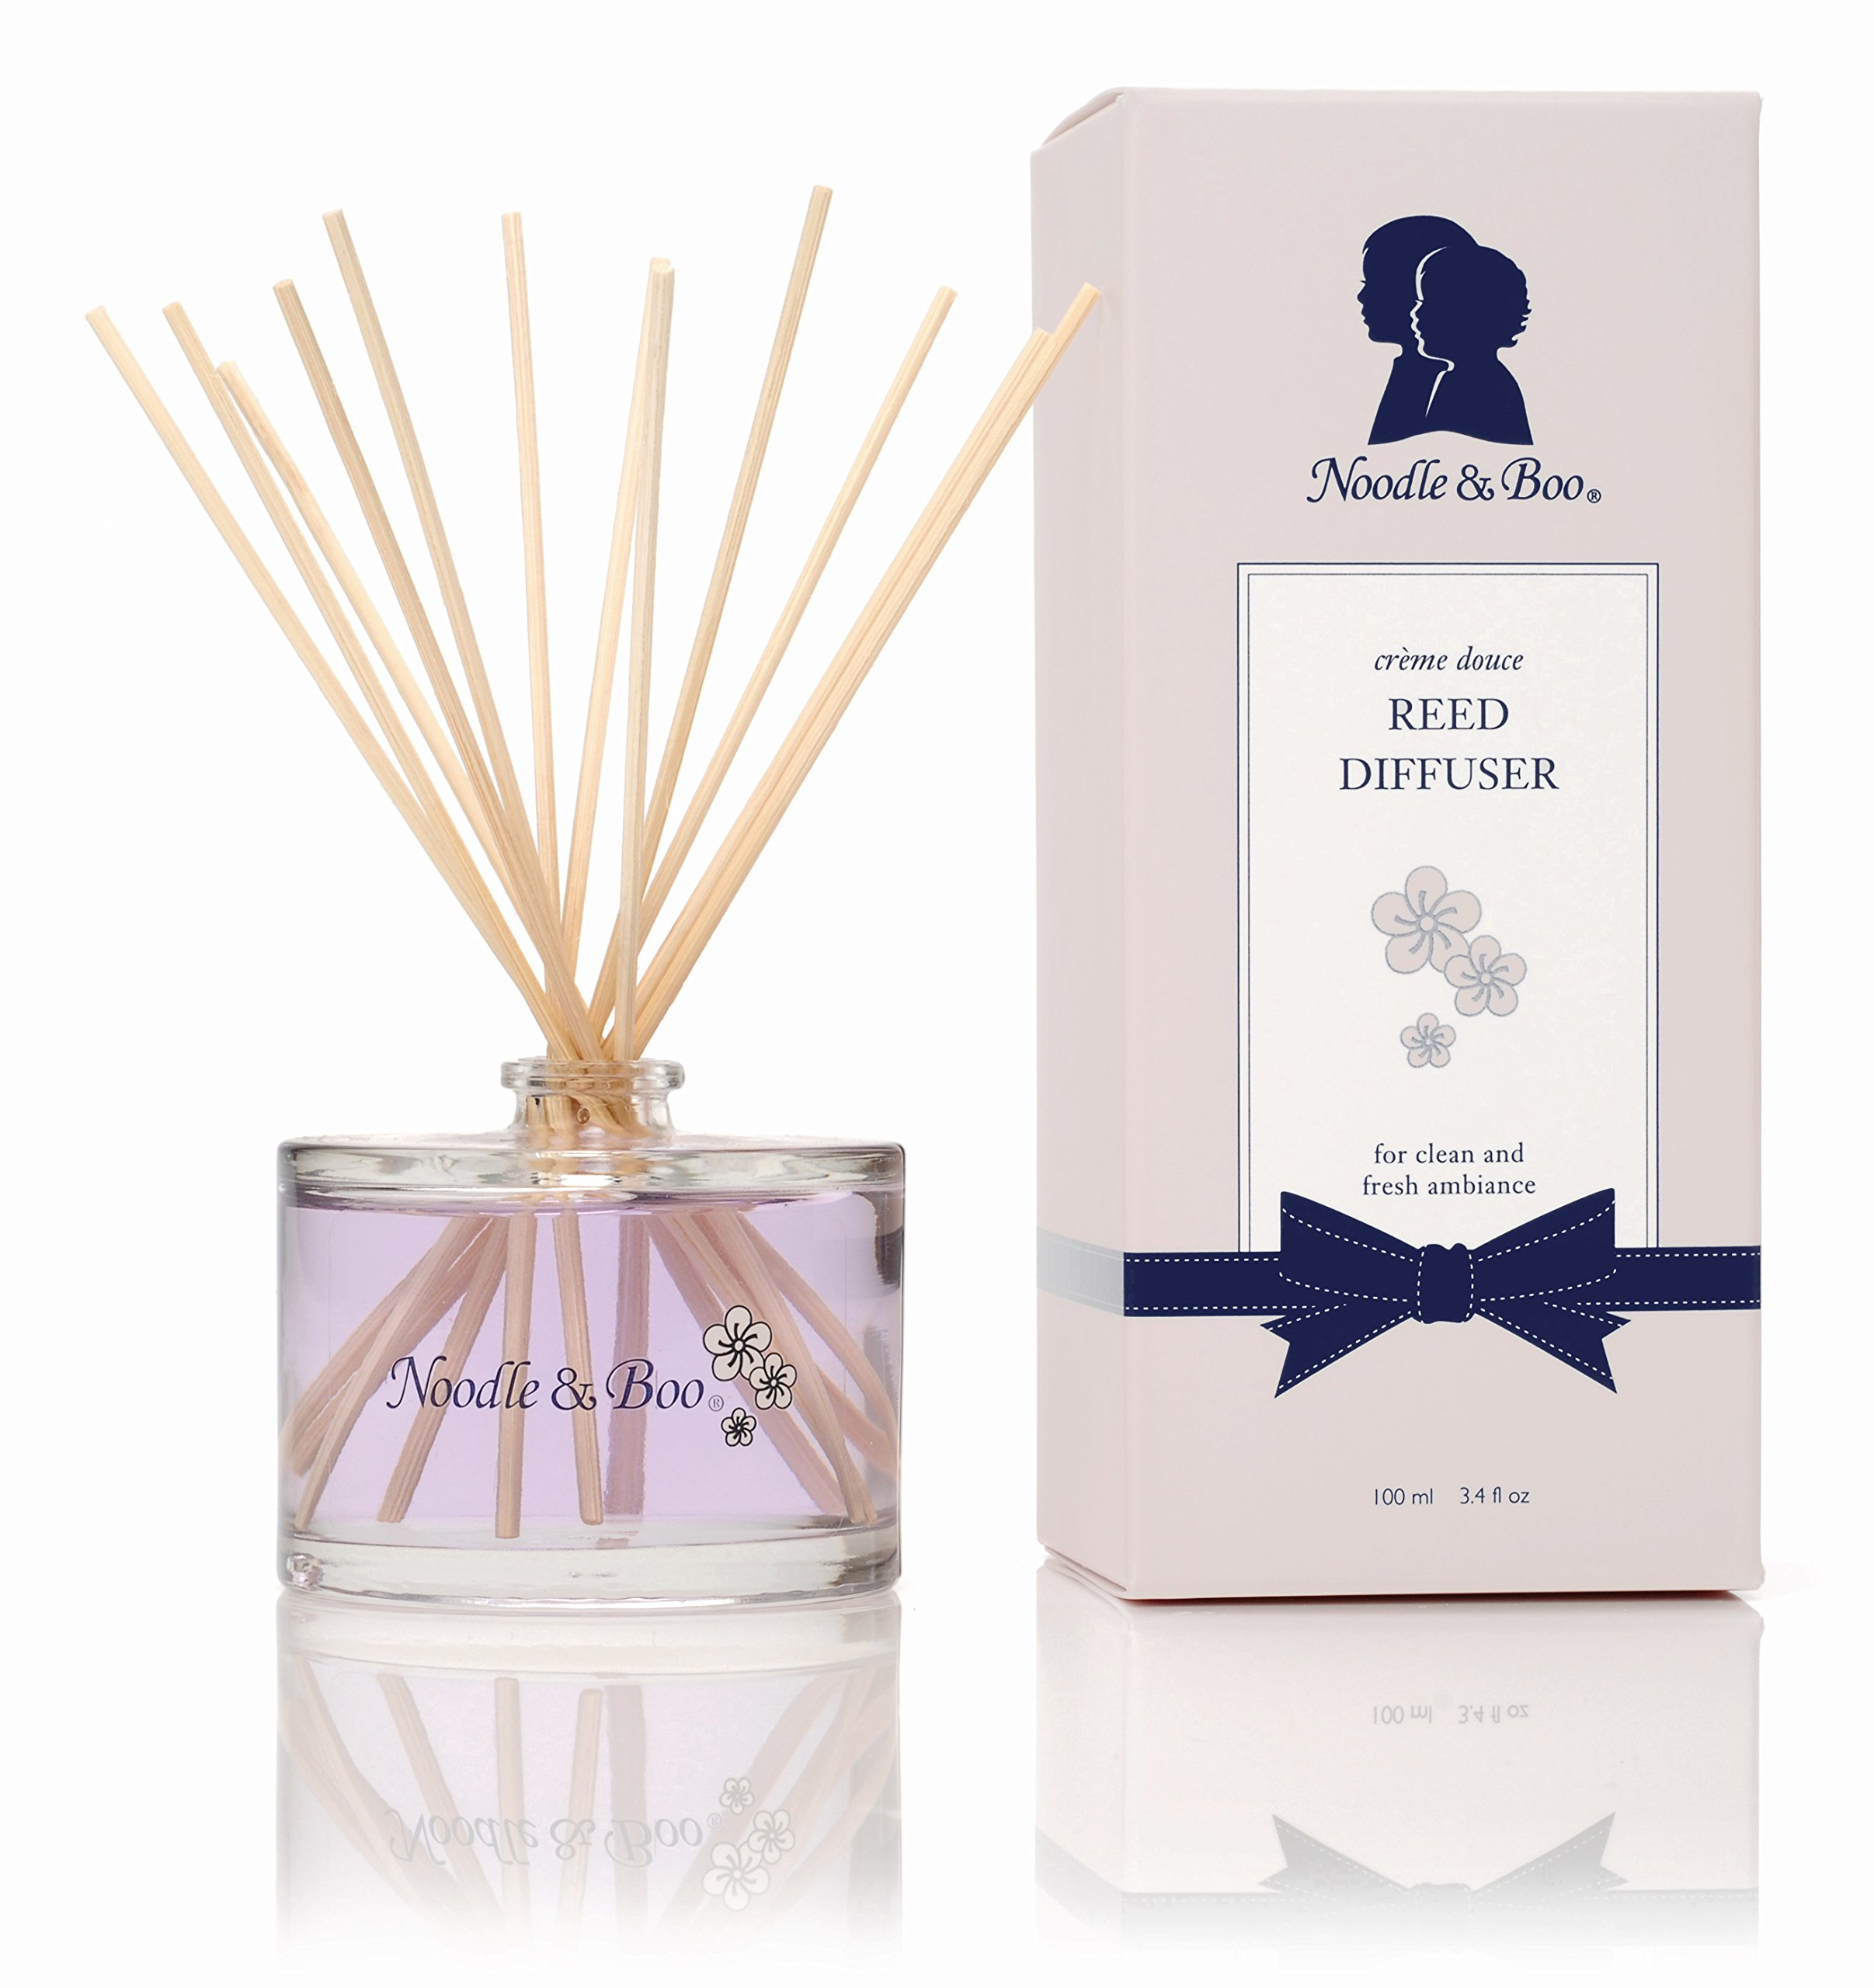 Noodle & Boo Reed Diffuser, 3.4 Fl Oz by Noodle & Boo